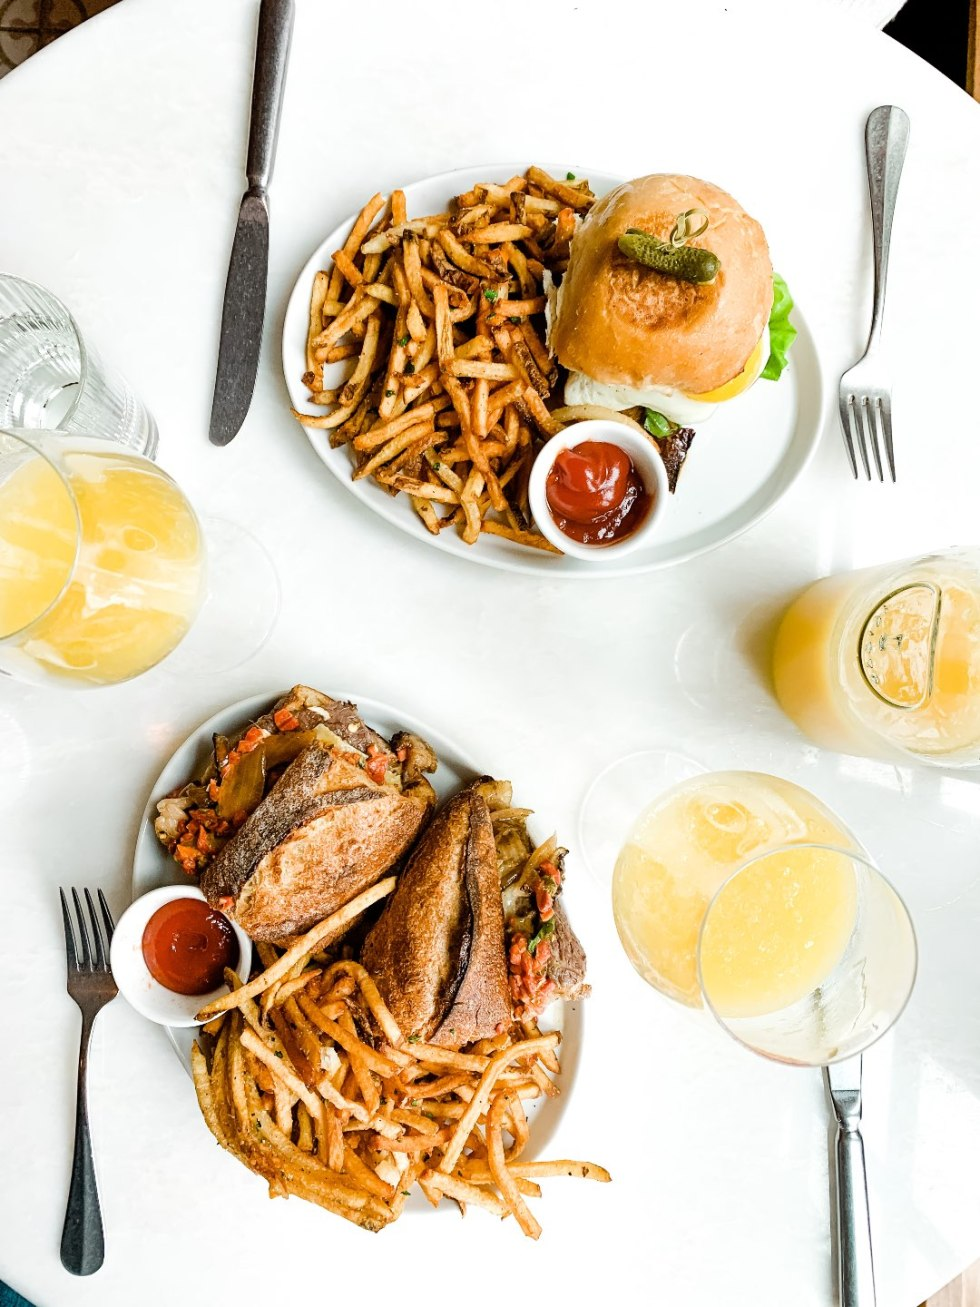 Brunch in Raleigh by popular Raleigh blog, I'm Fixin To: image of a burger and fries.